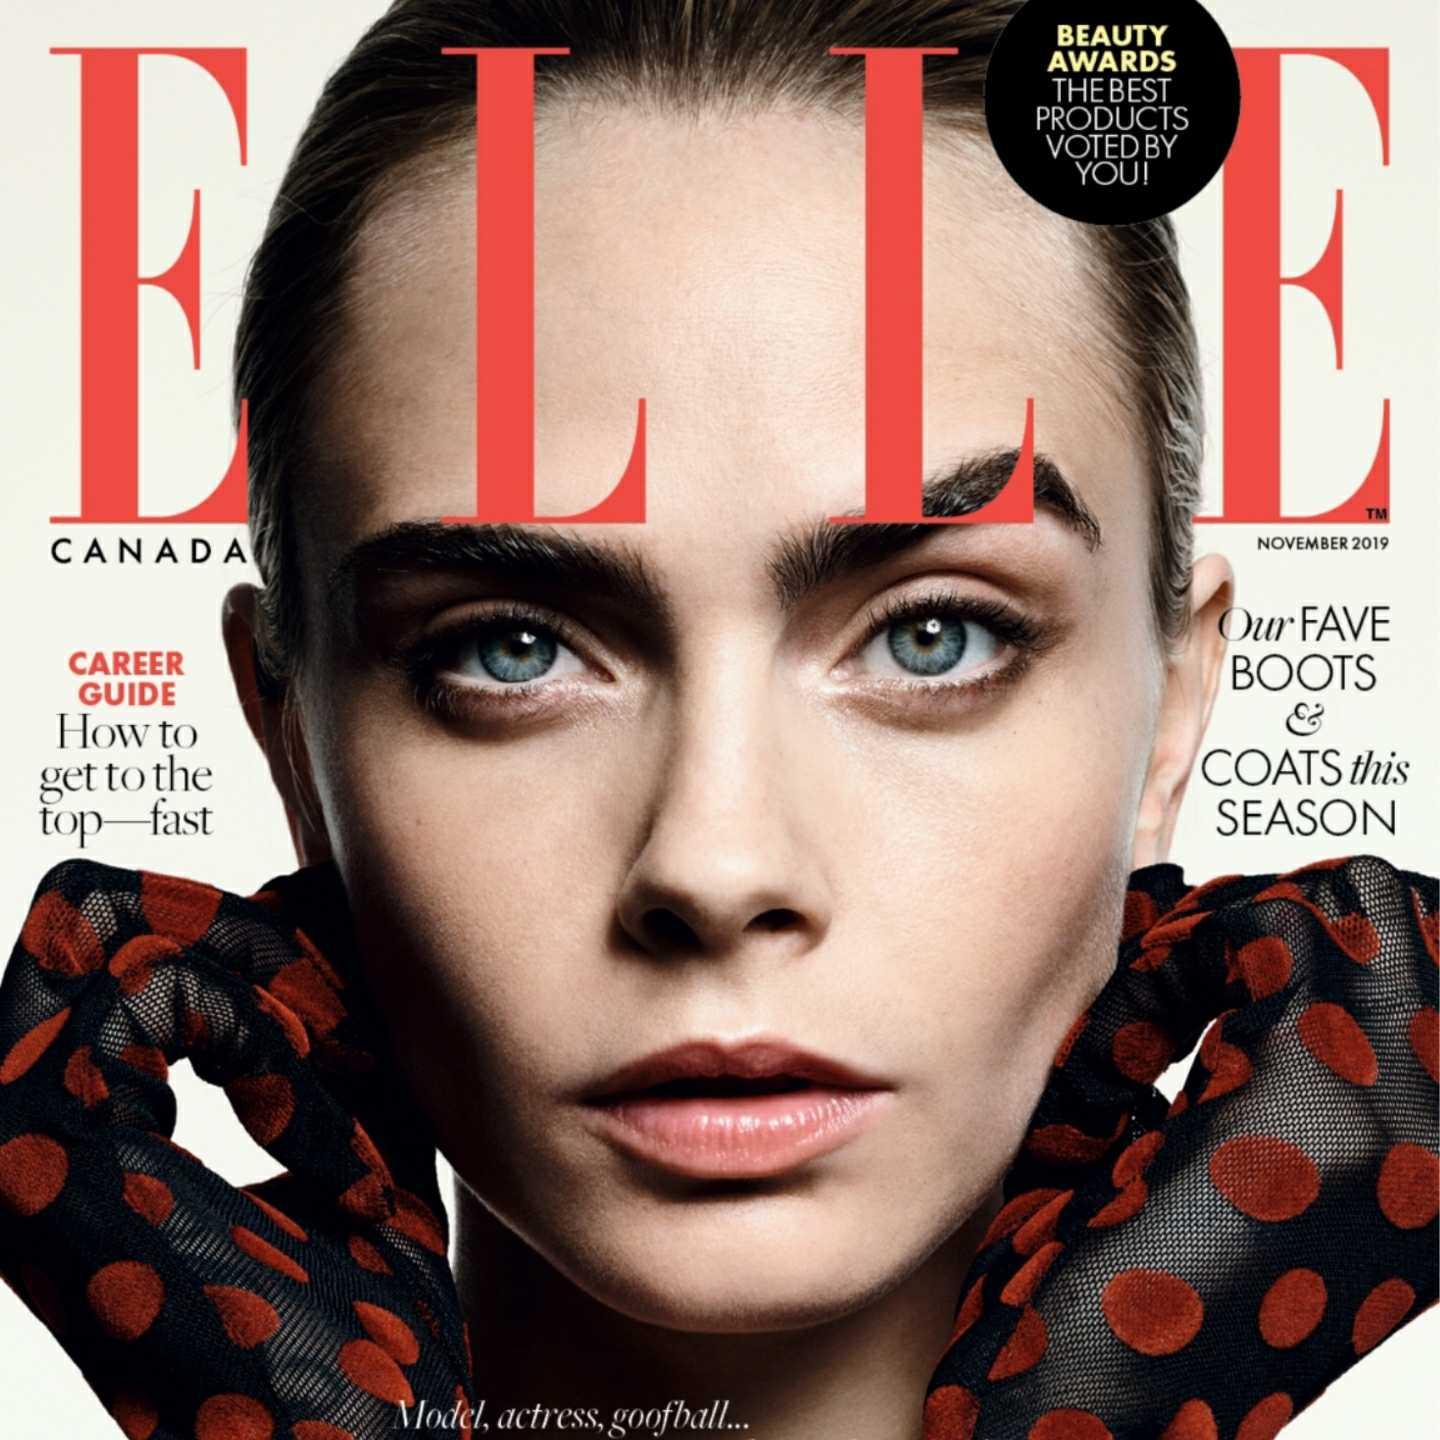 Cara Delevingne,Karl Lagerfeld,ELLE CANADA,KO MÉDIA,Hearst Magazines, uk, storm management, British fashion awards, supermodel, singer, 360 MAGAZINE